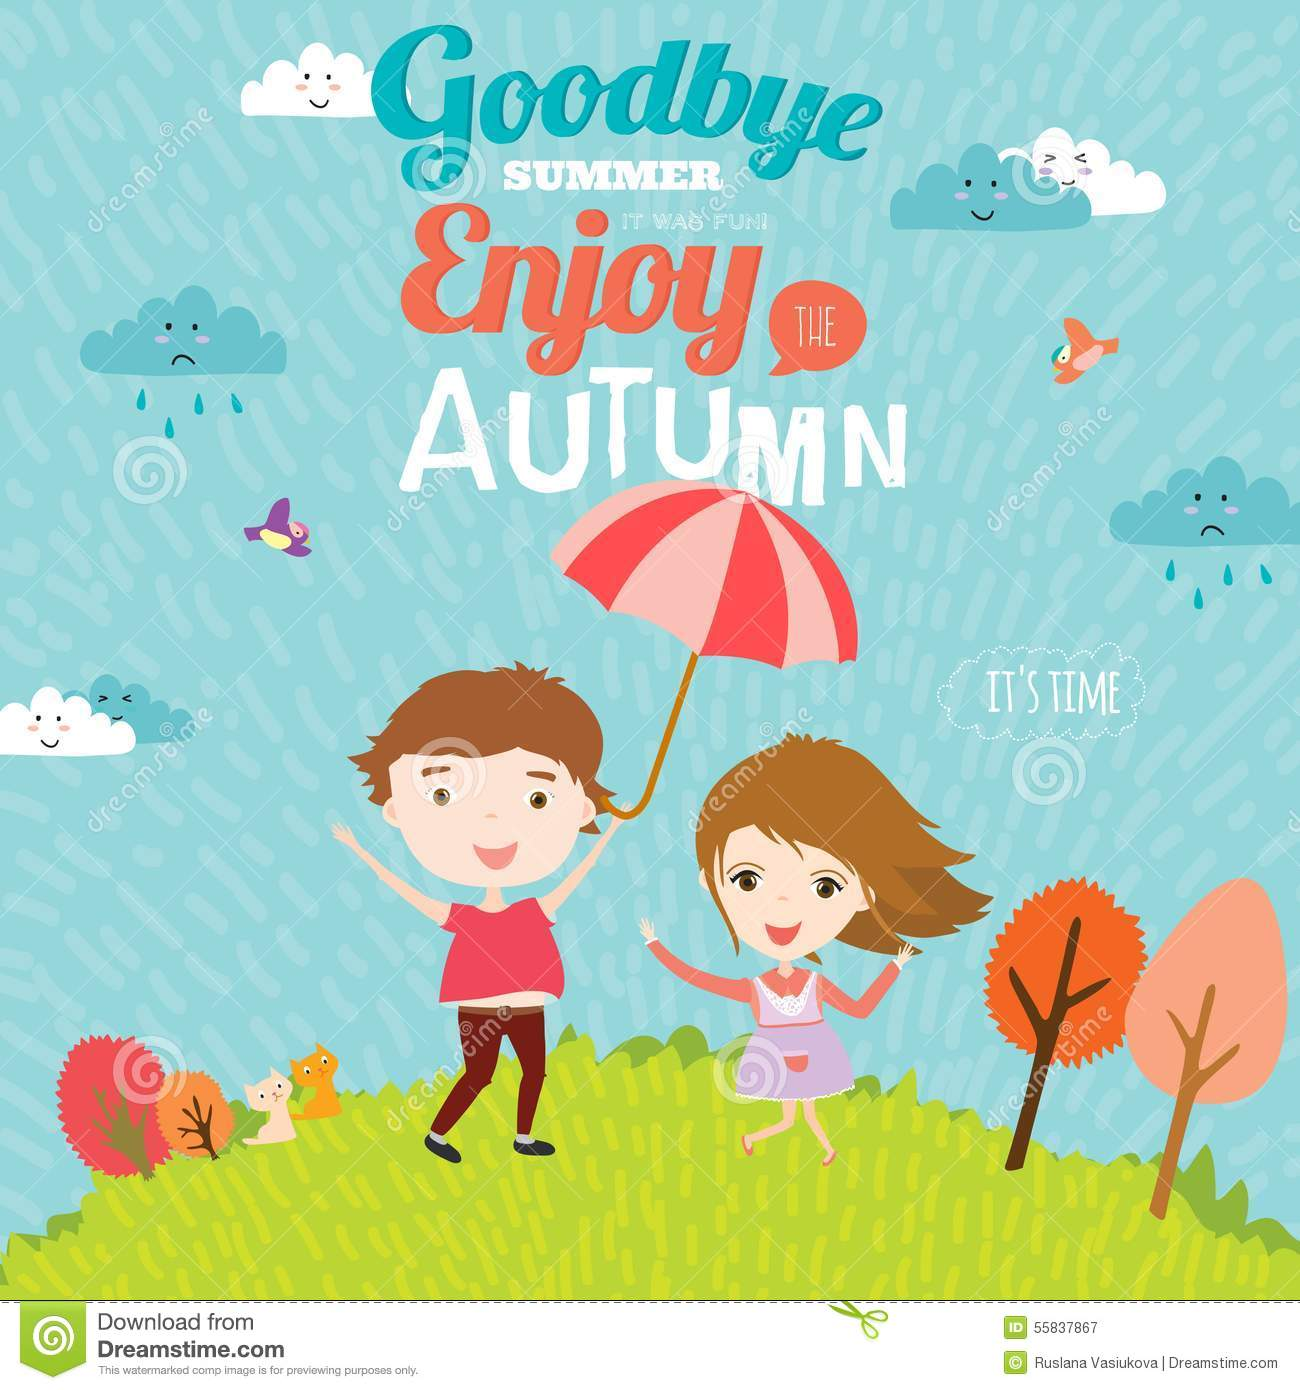 Autumn Illustration With Happy Kids Stock Vector - Image: 55837867